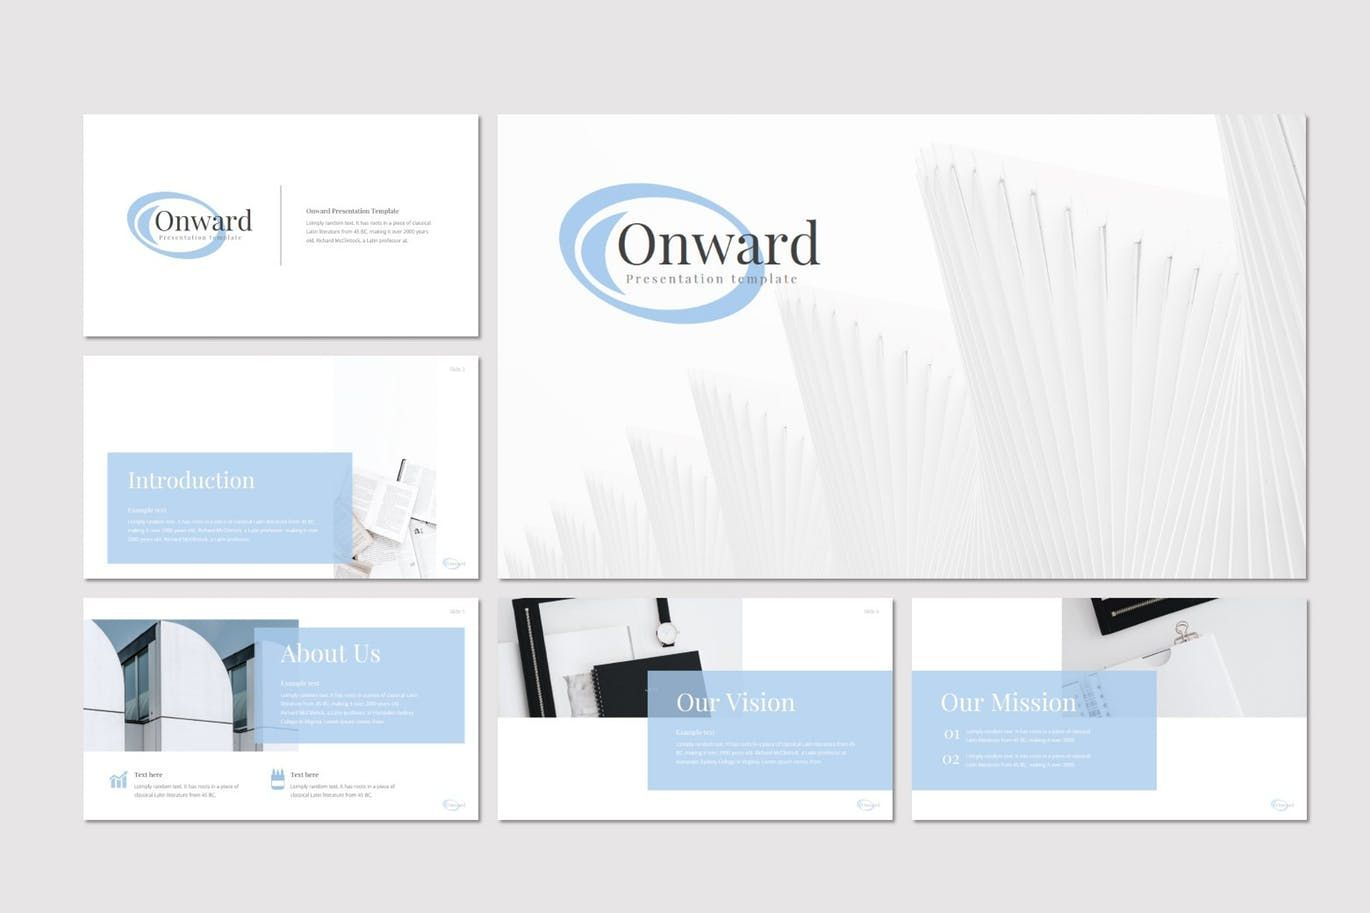 Onward - Google Slides Template, Slide 2, 08210, Presentation Templates — PoweredTemplate.com